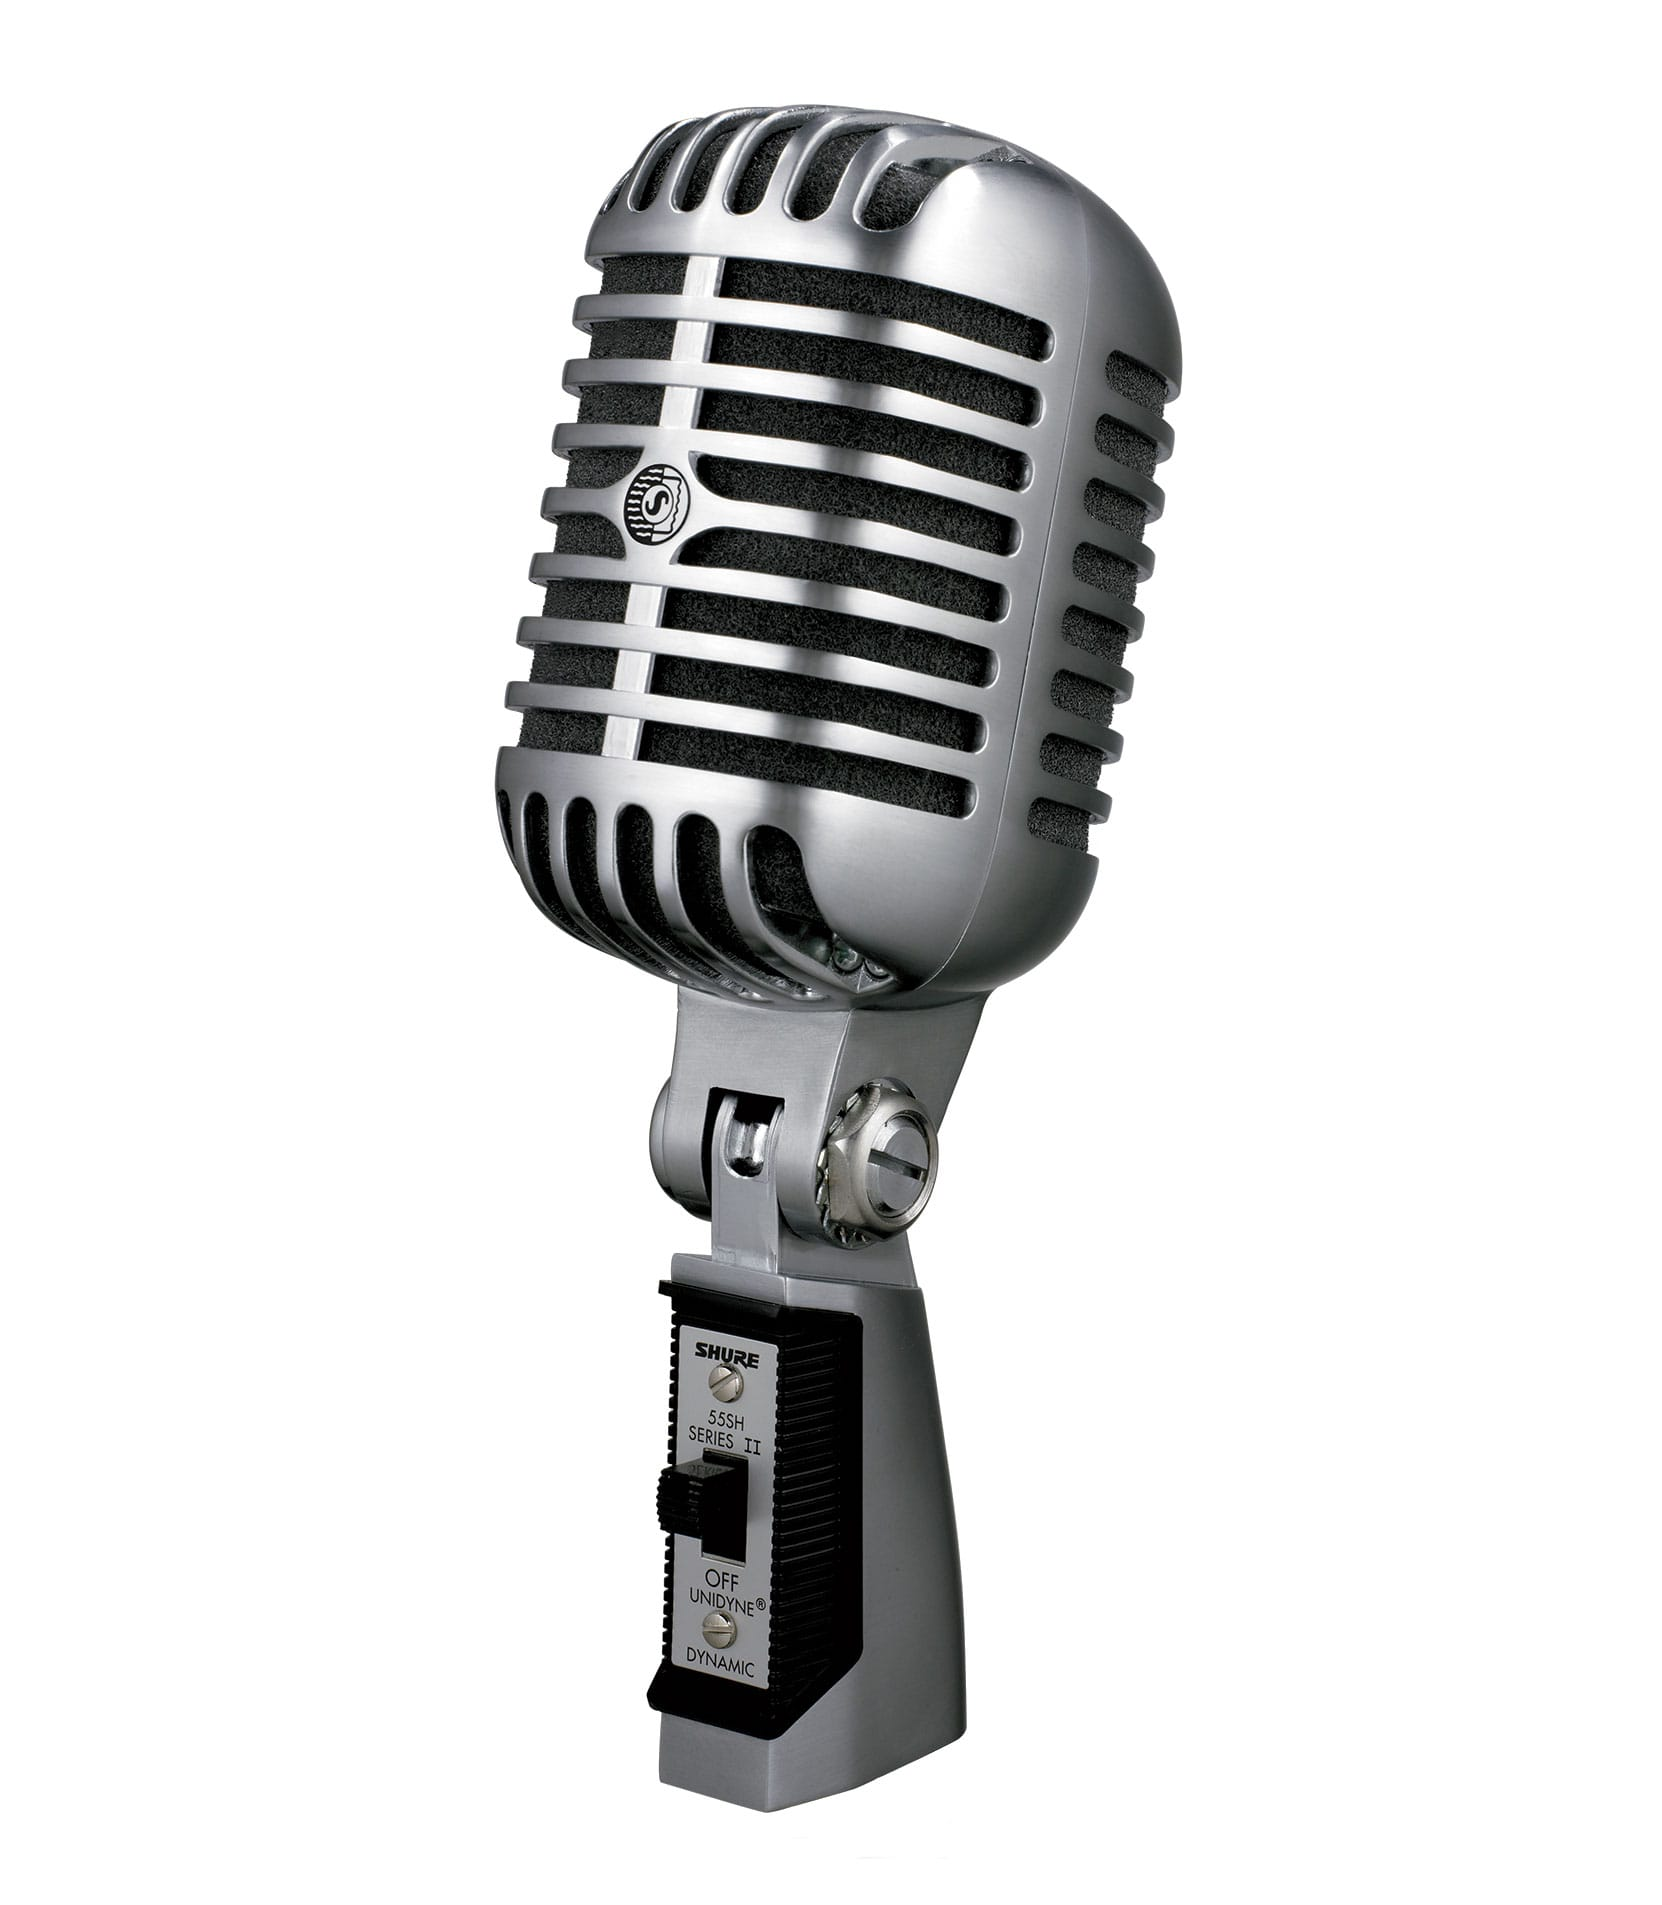 Buy Shure - 55SH SERIESII Cardioid Dynamic Vocal Speech Mic